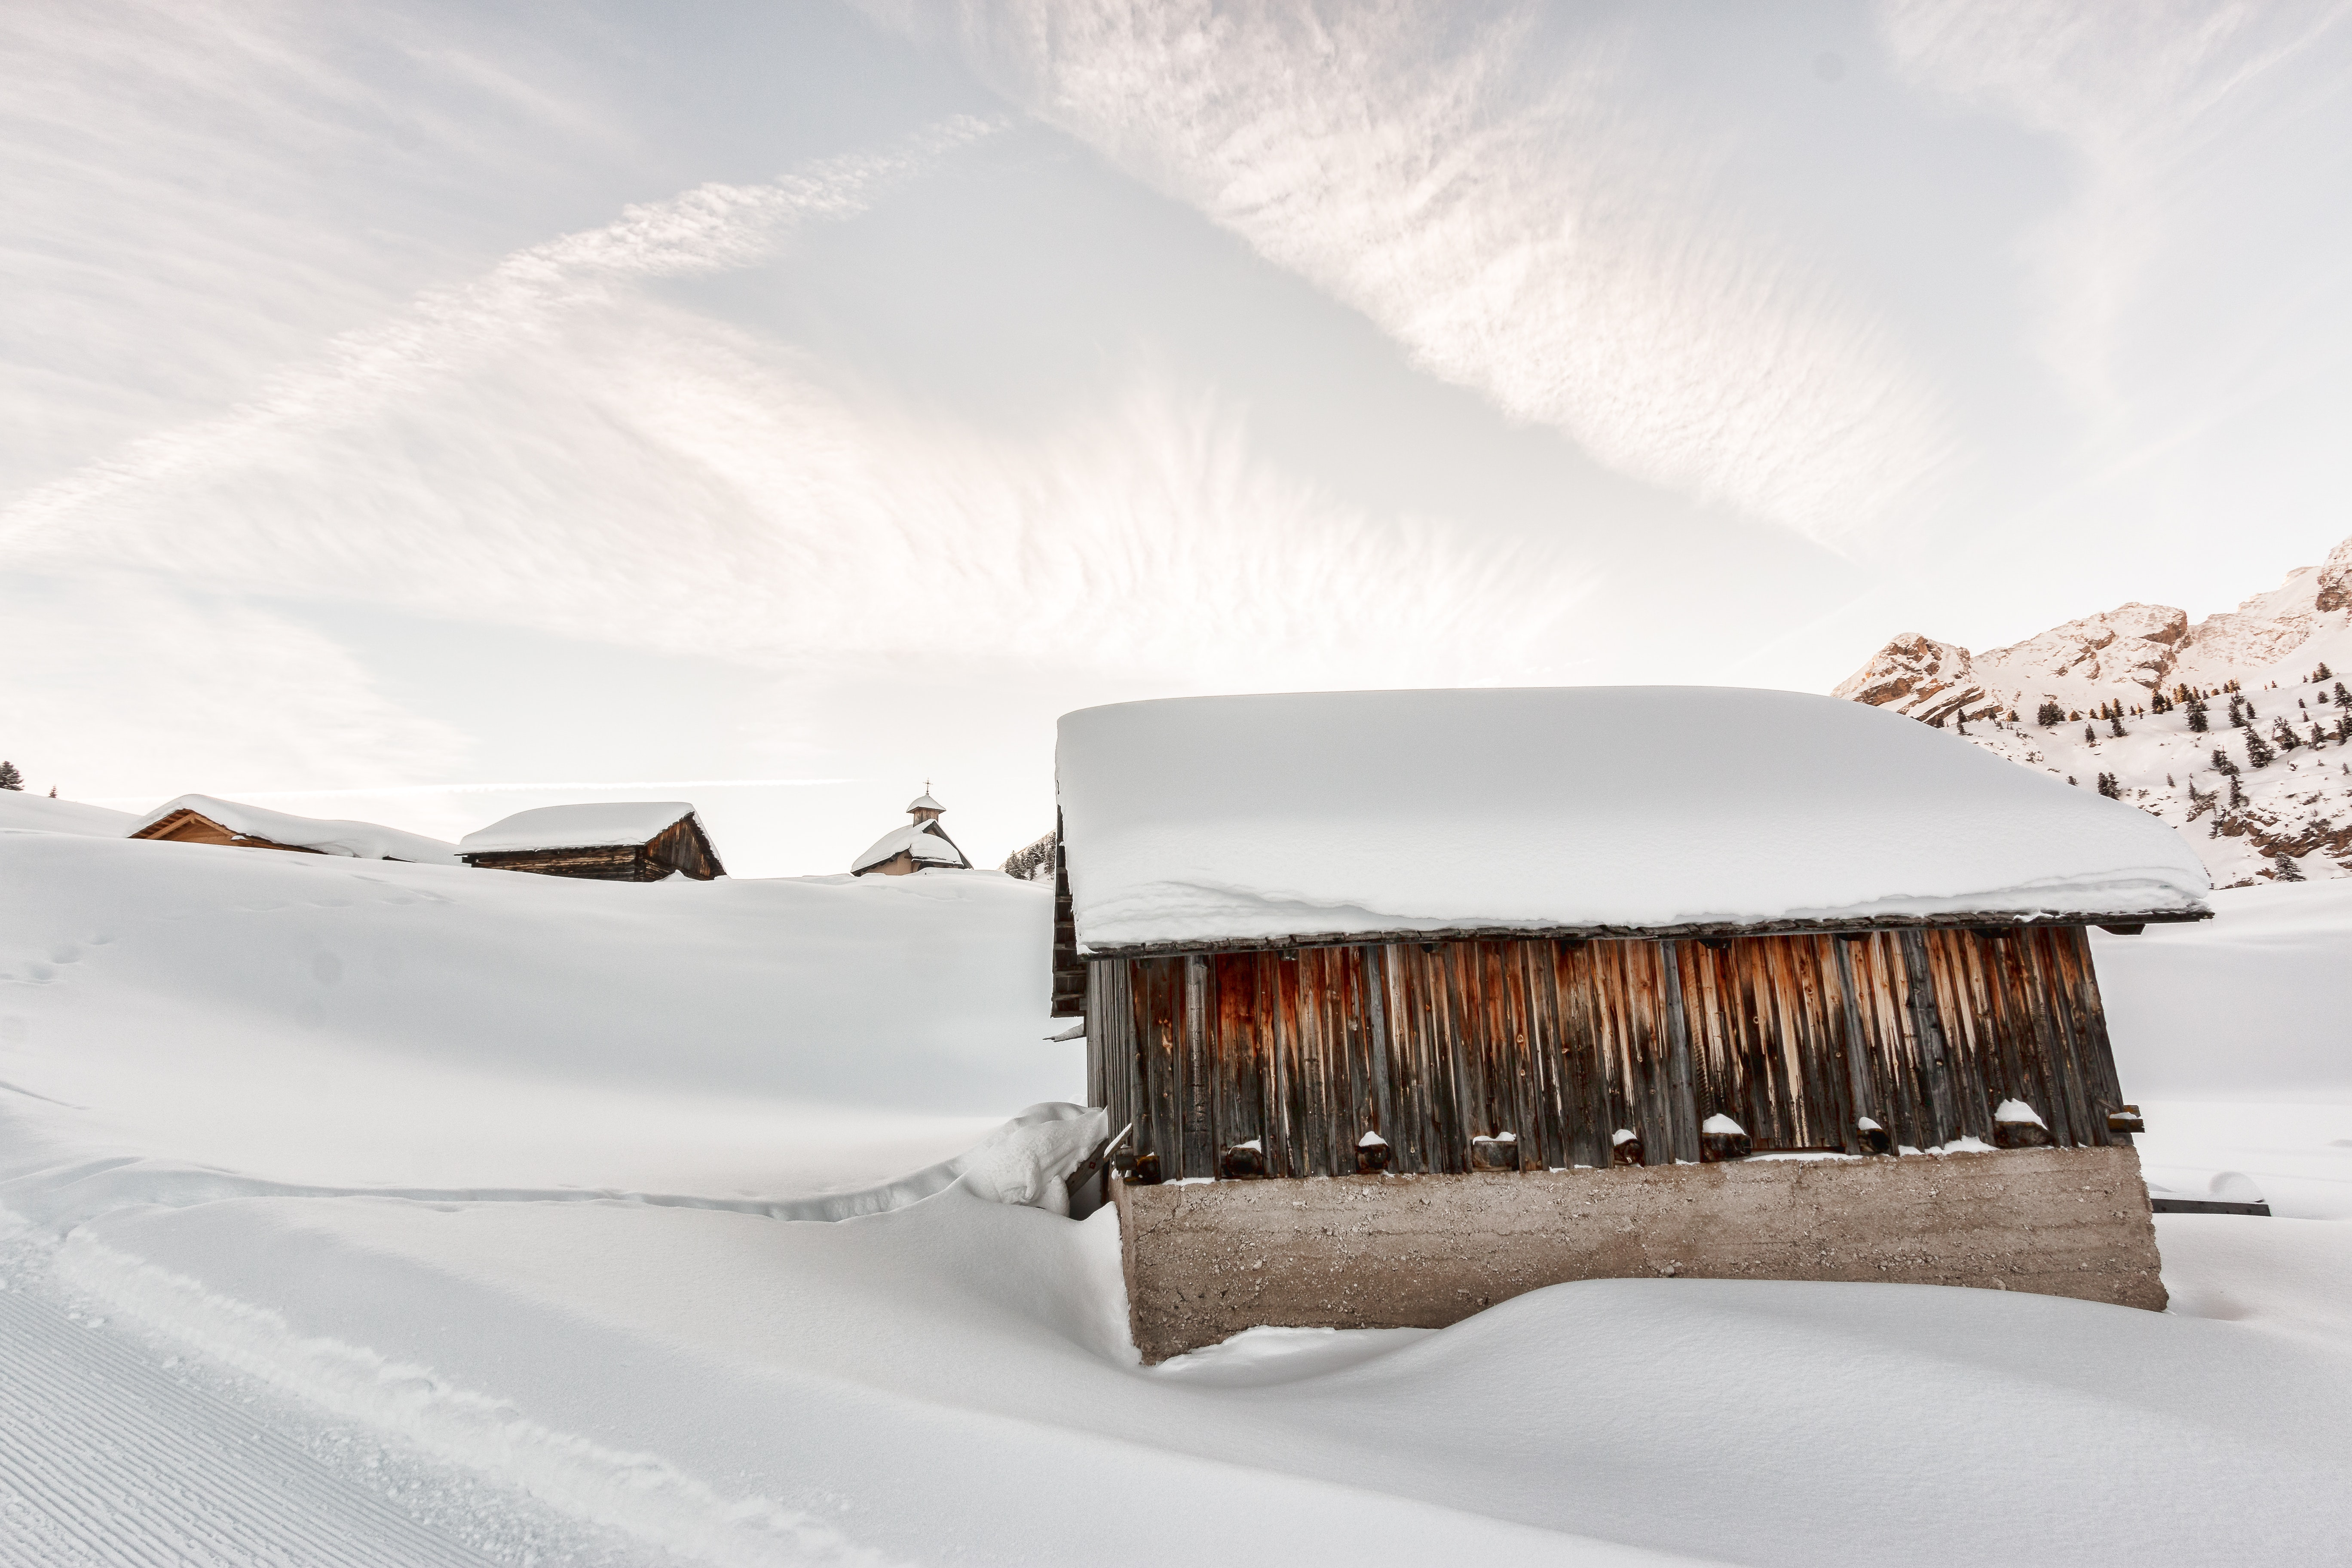 Photo of Concrete Houses Covered With Snow, Mountain, Winter, Weather, Village, HQ Photo